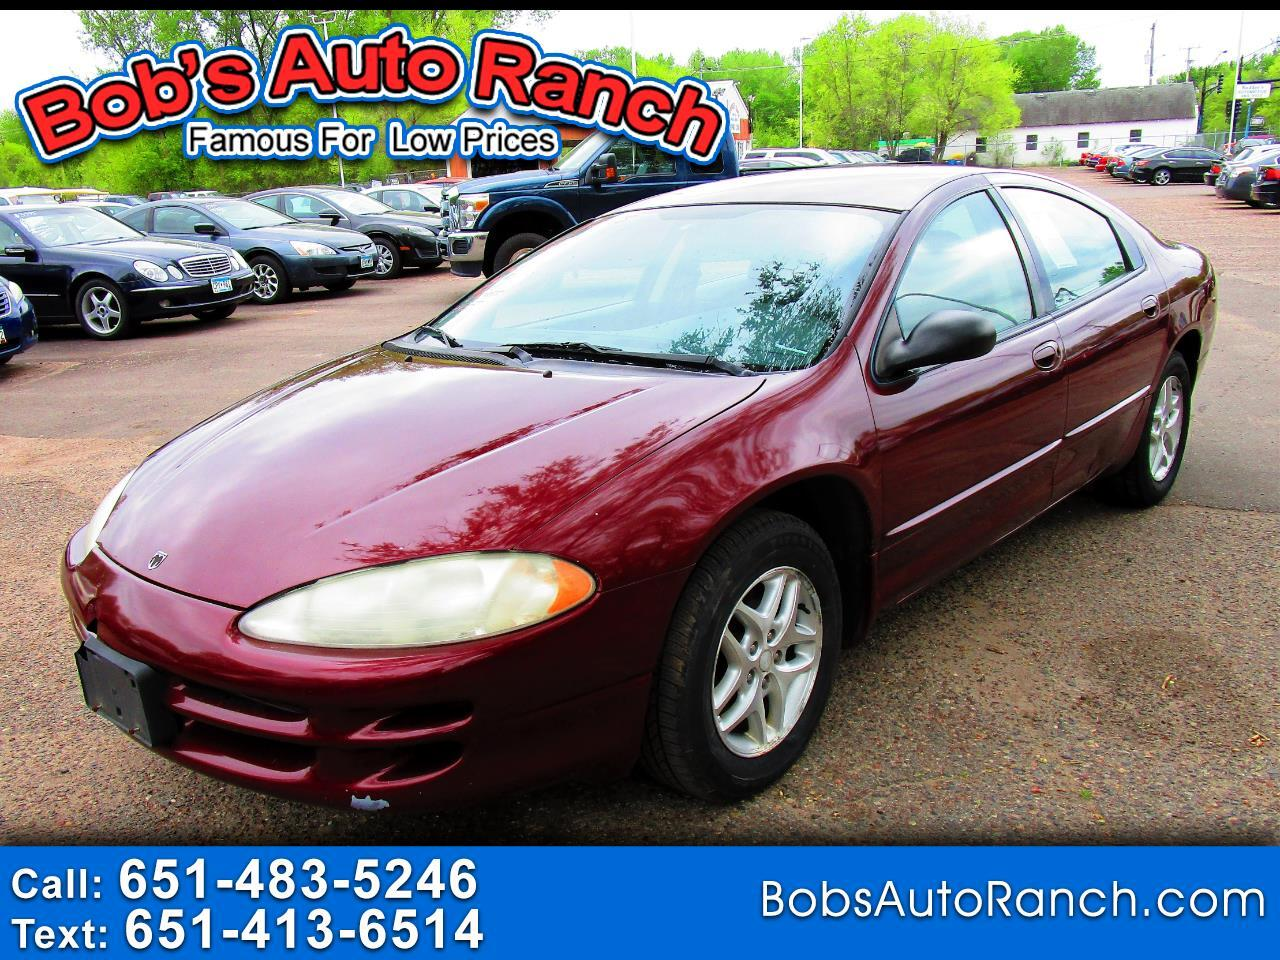 Dodge Intrepid 4dr Sdn SE 2002